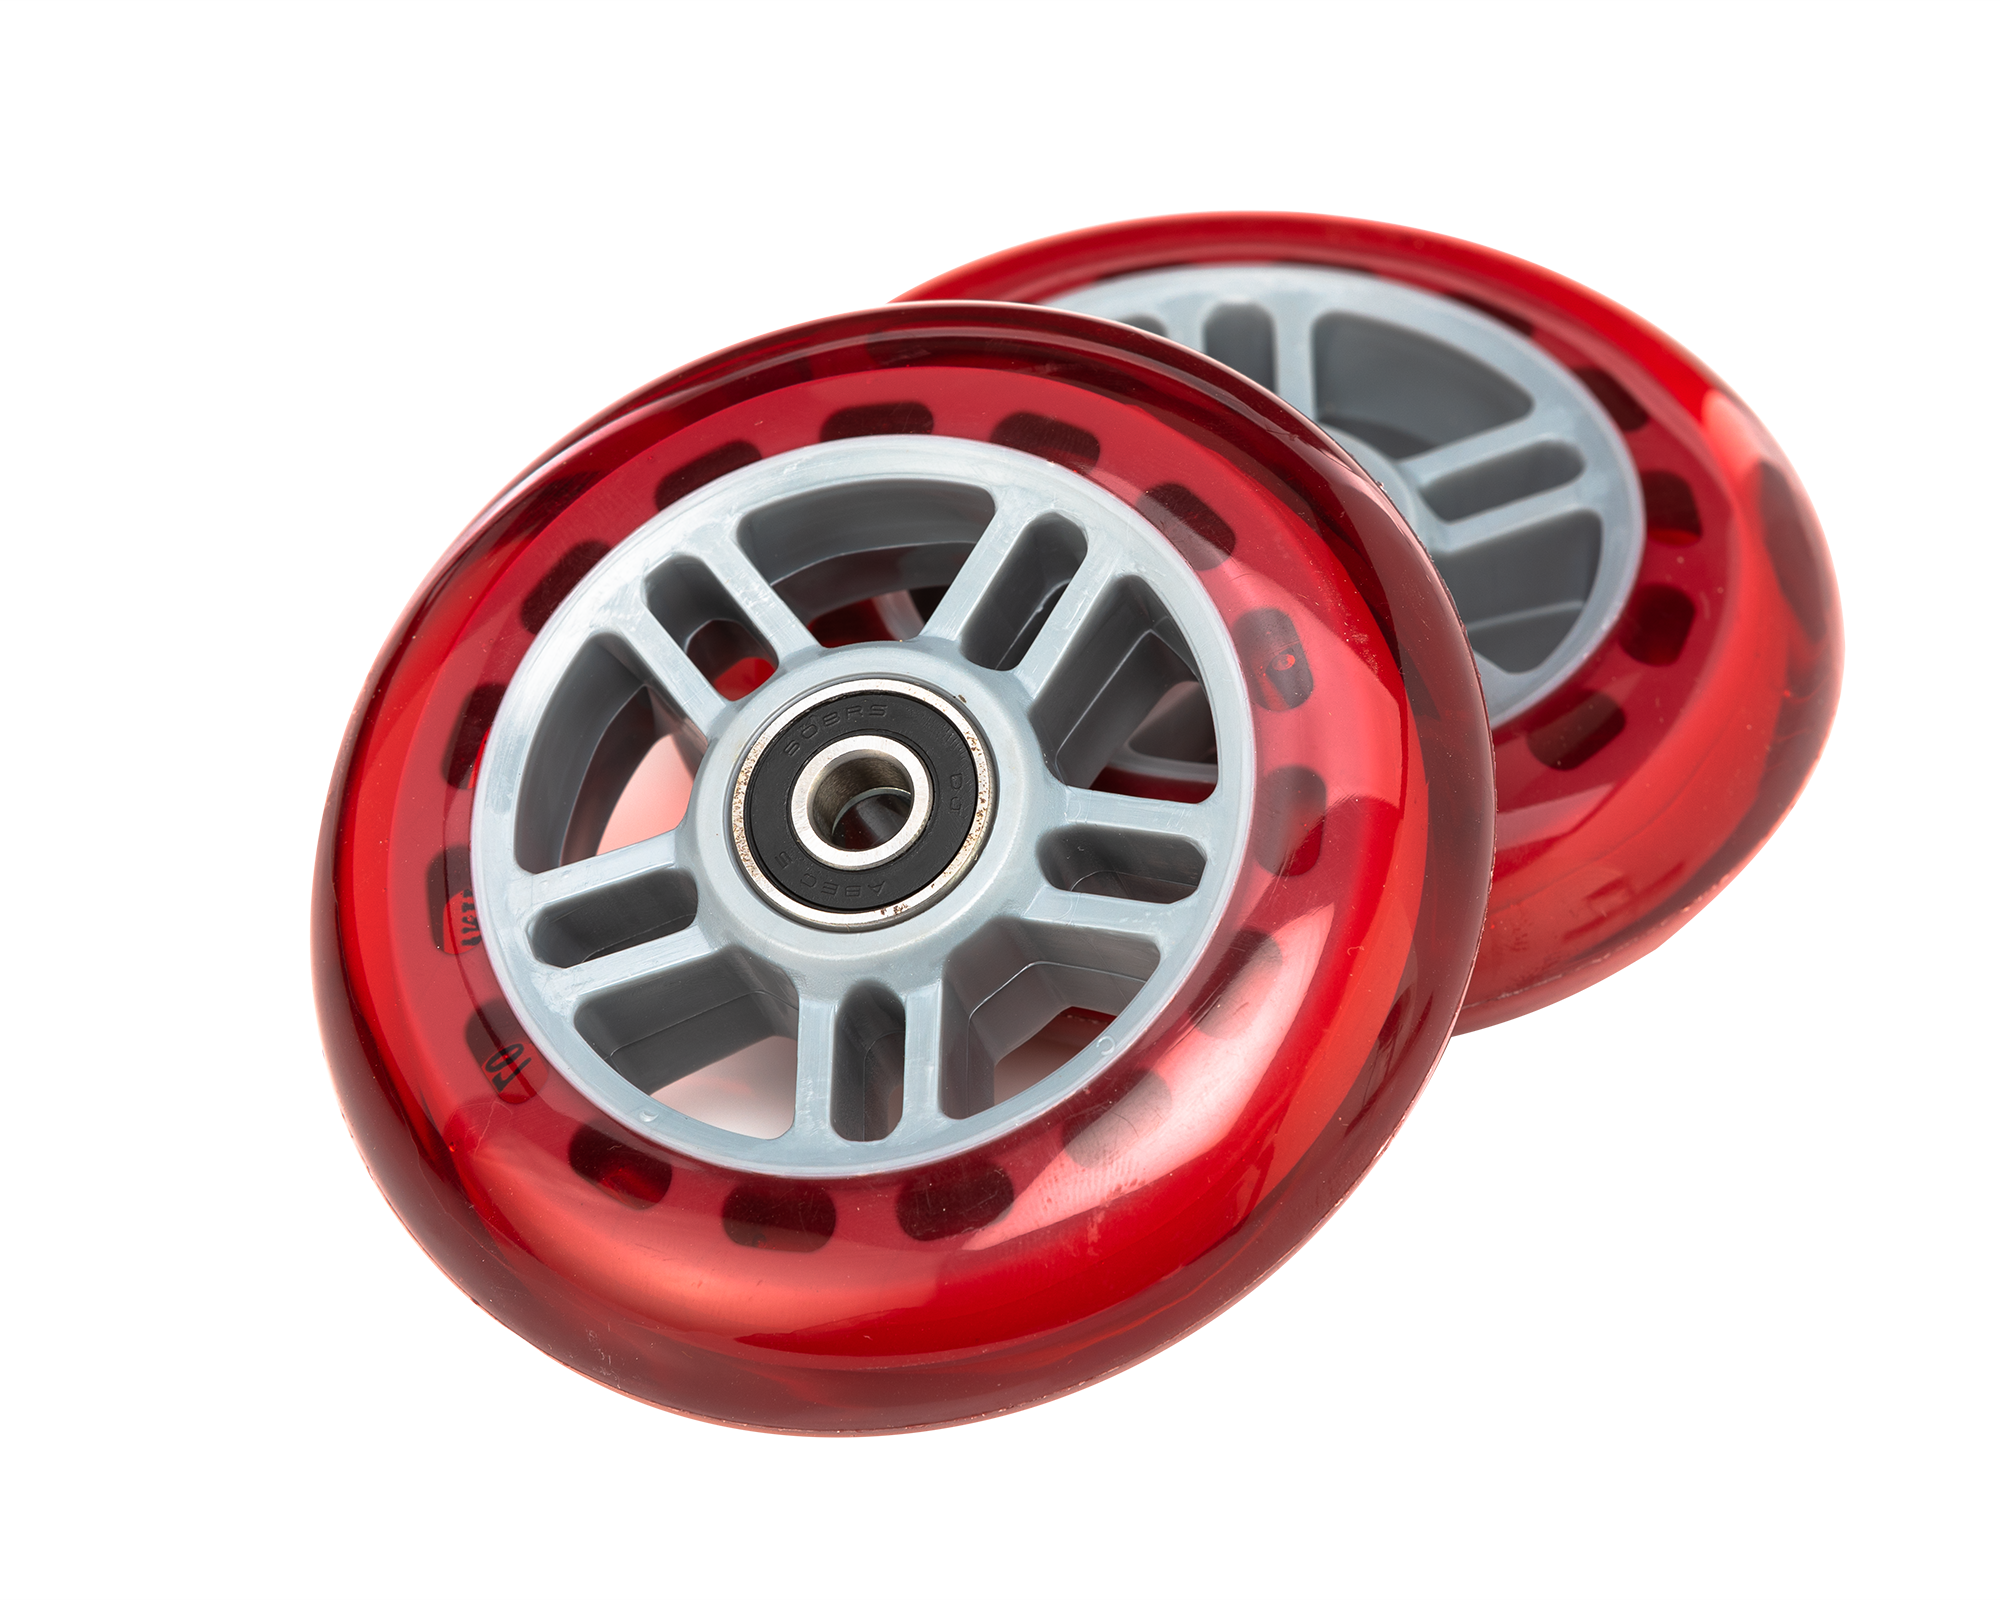 Razor Scooter 98mm Wheels - Red - 134932-RD